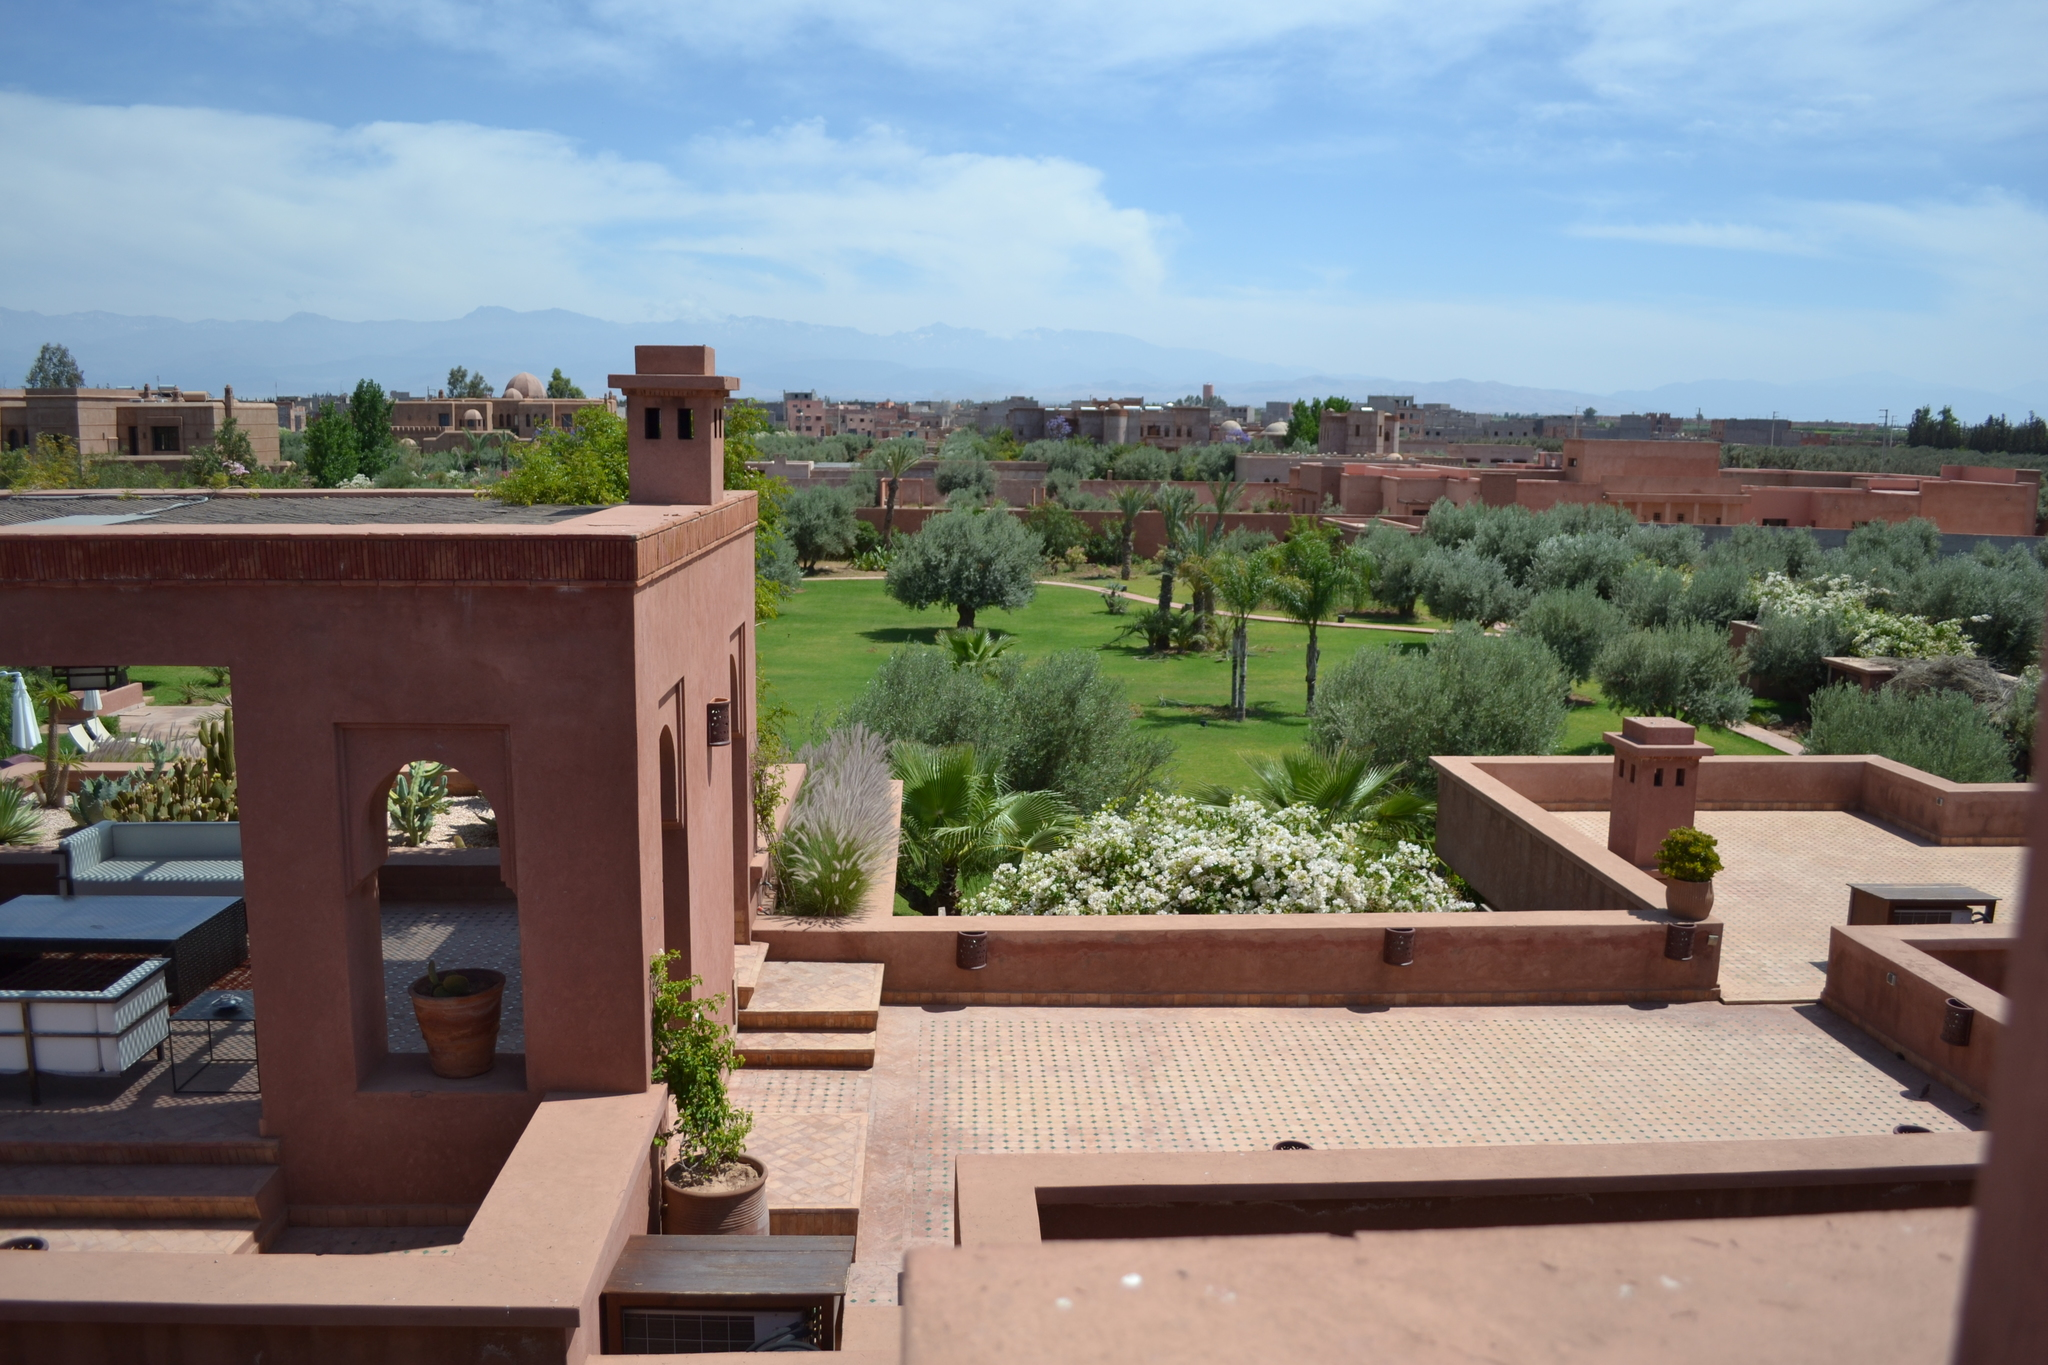 Apartment VILLA JADE - PISCINE  HAMMAM  PETIT-DEJEUNER INCLUS A MARRAKECH photo 20445768